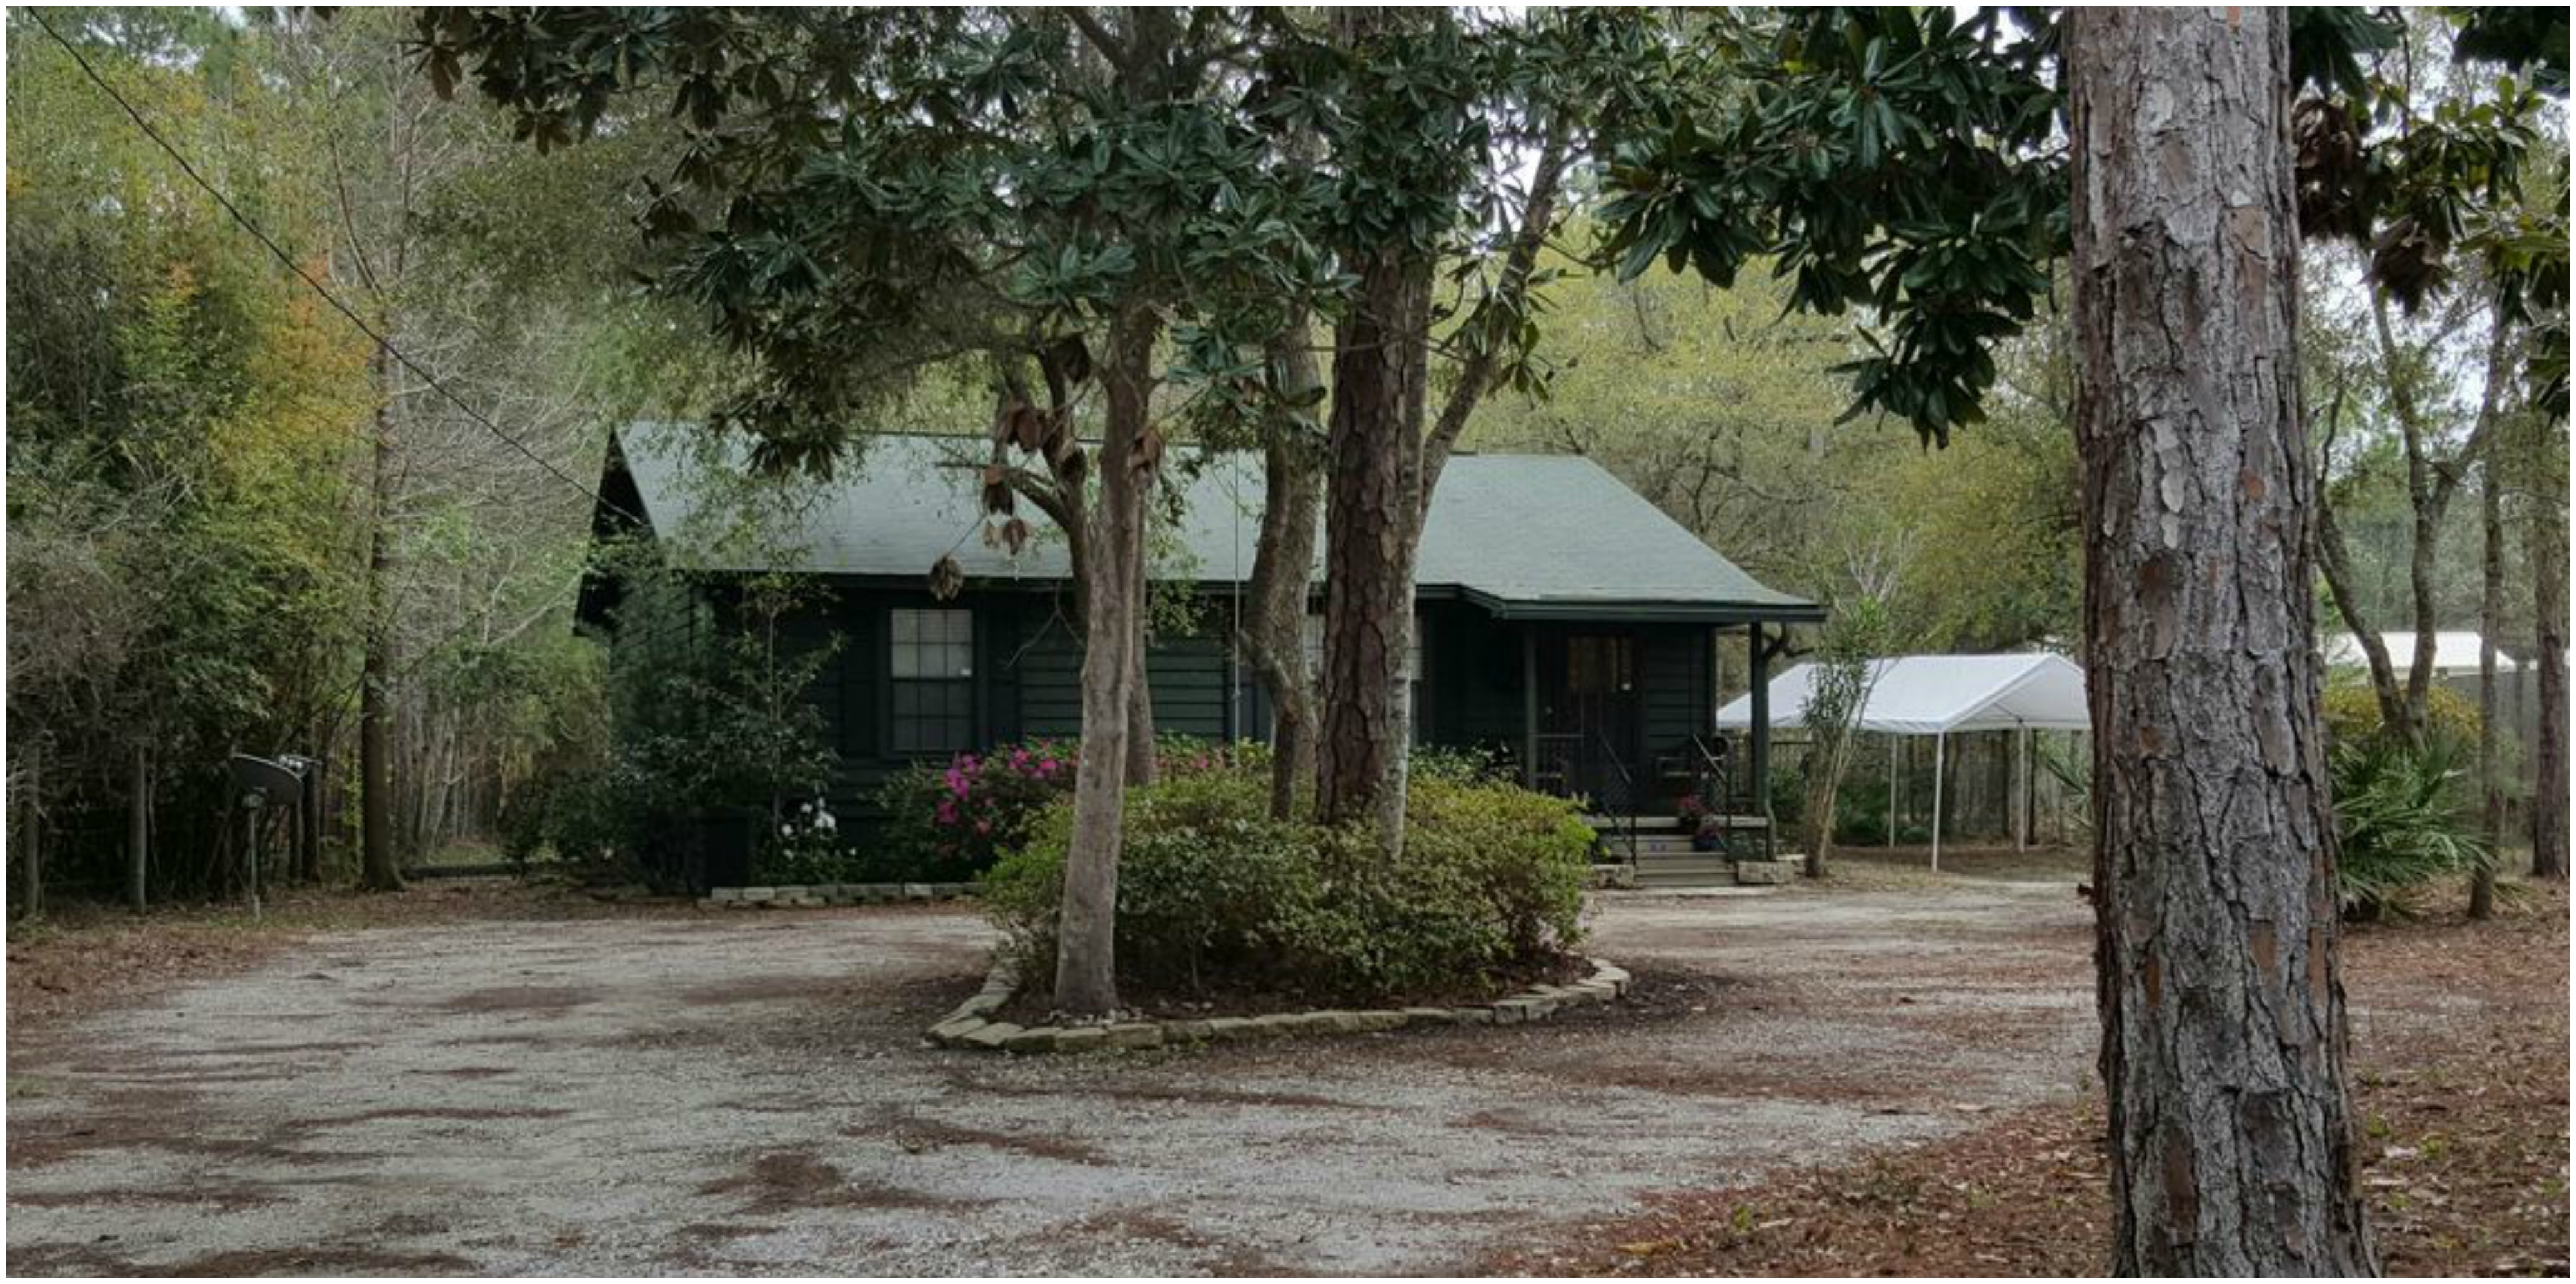 campsite cabins rental travel accommodation rentals runner resort fort cabin road florida and rustic pierce rates